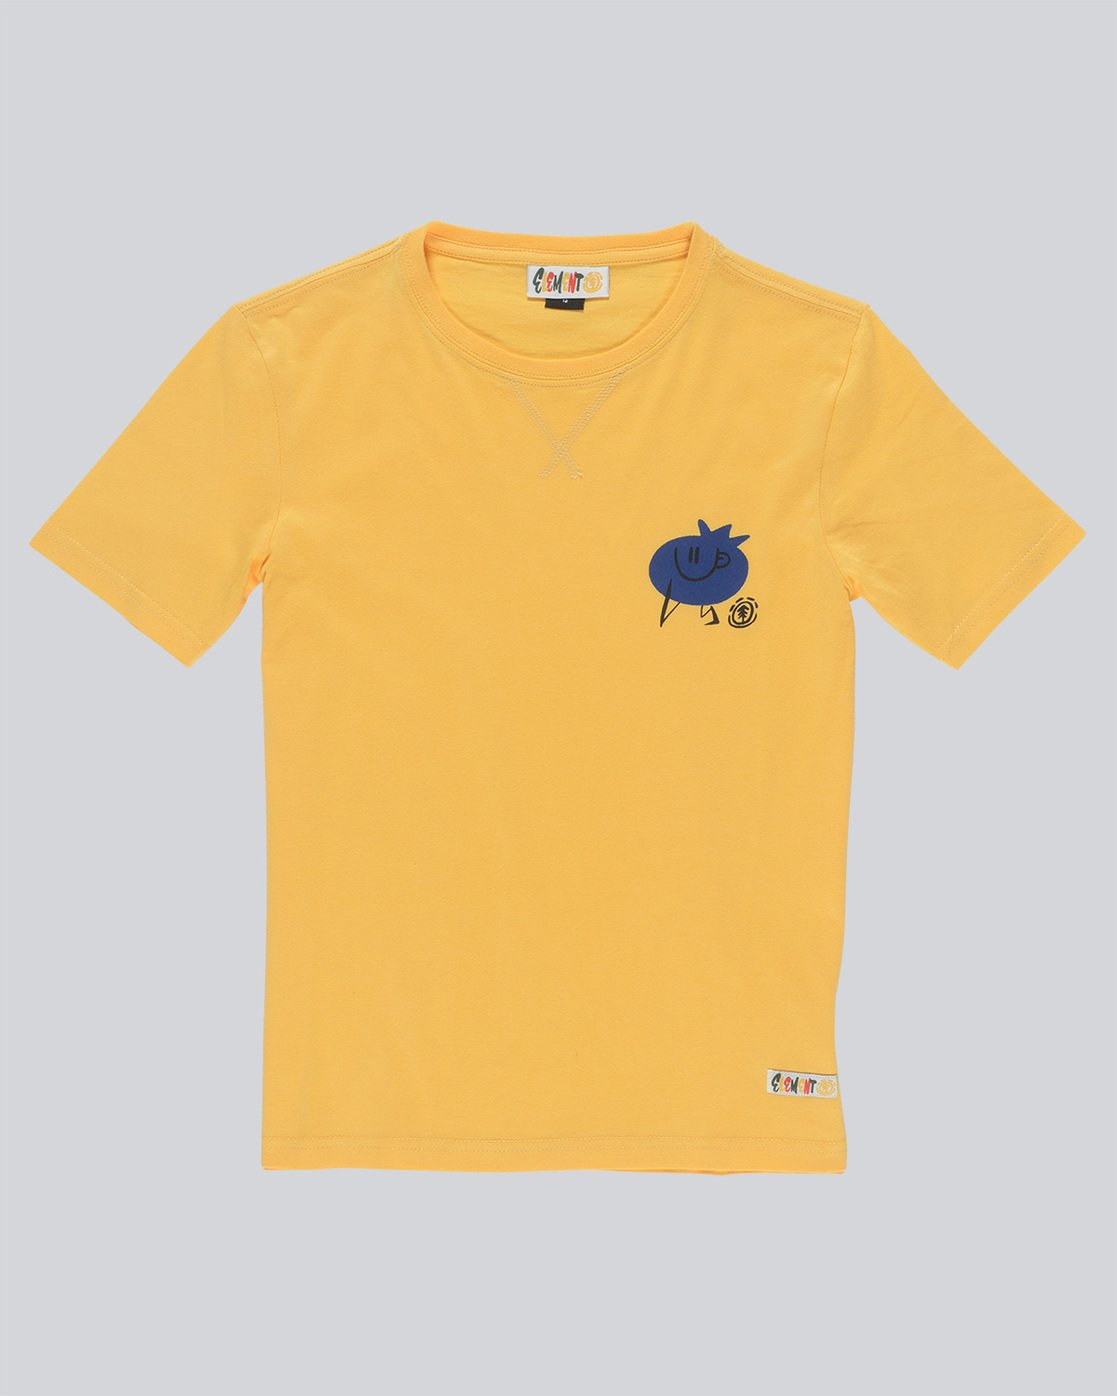 0 Yawyd Healthy Ss Tee - Tee Shirt for Boys Yellow N2SSC7ELP9 Element